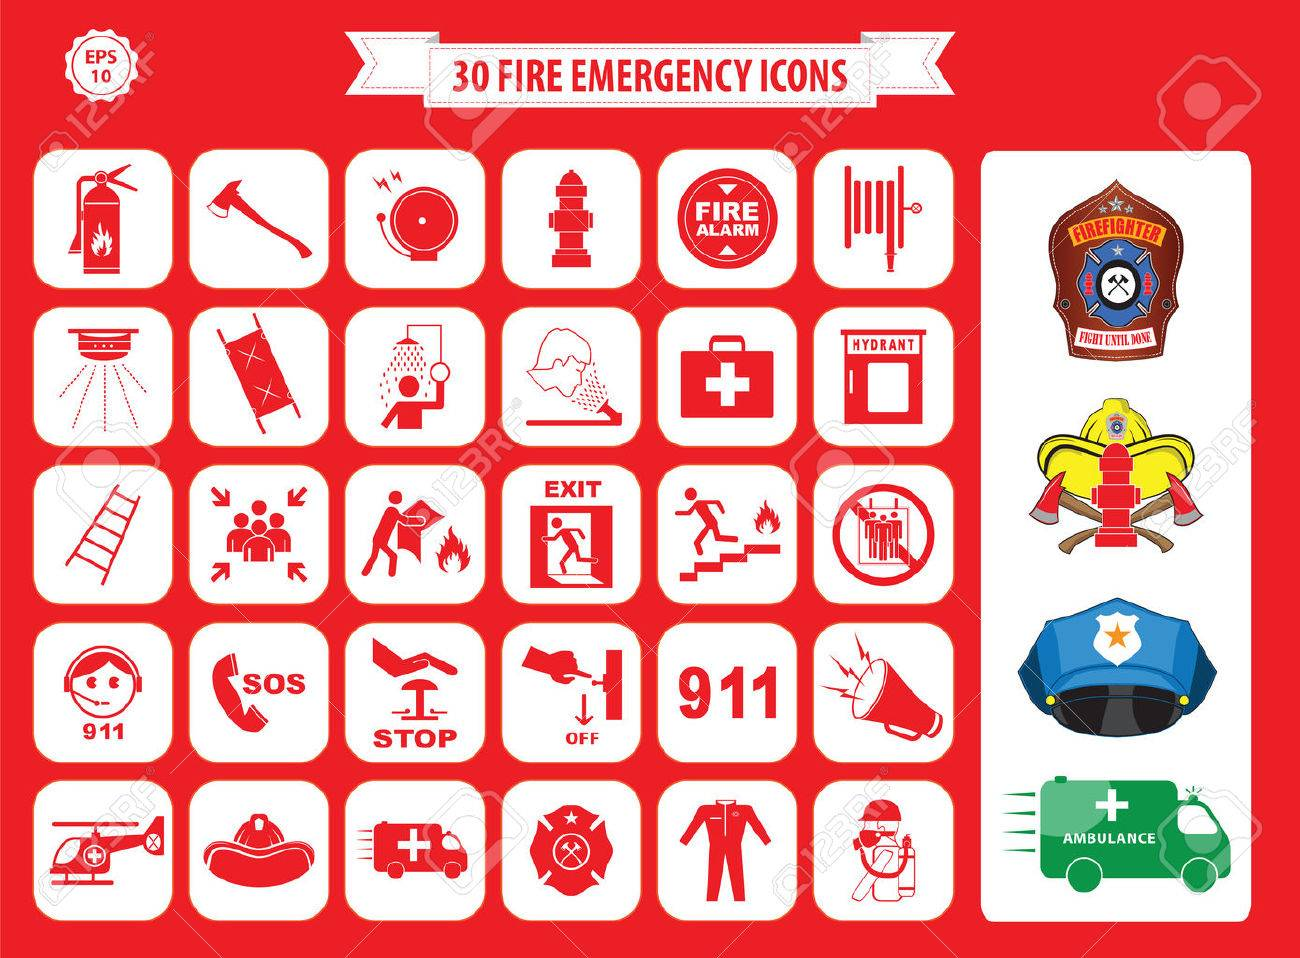 Set of fire emergency icons fire exit, emergency exit, fire assembly point, ladder, axe, fire extinguisher, hose reel, alarm, eye wash, fire exit, 911, hydrant, first aid, ambulance, badge - 52550864